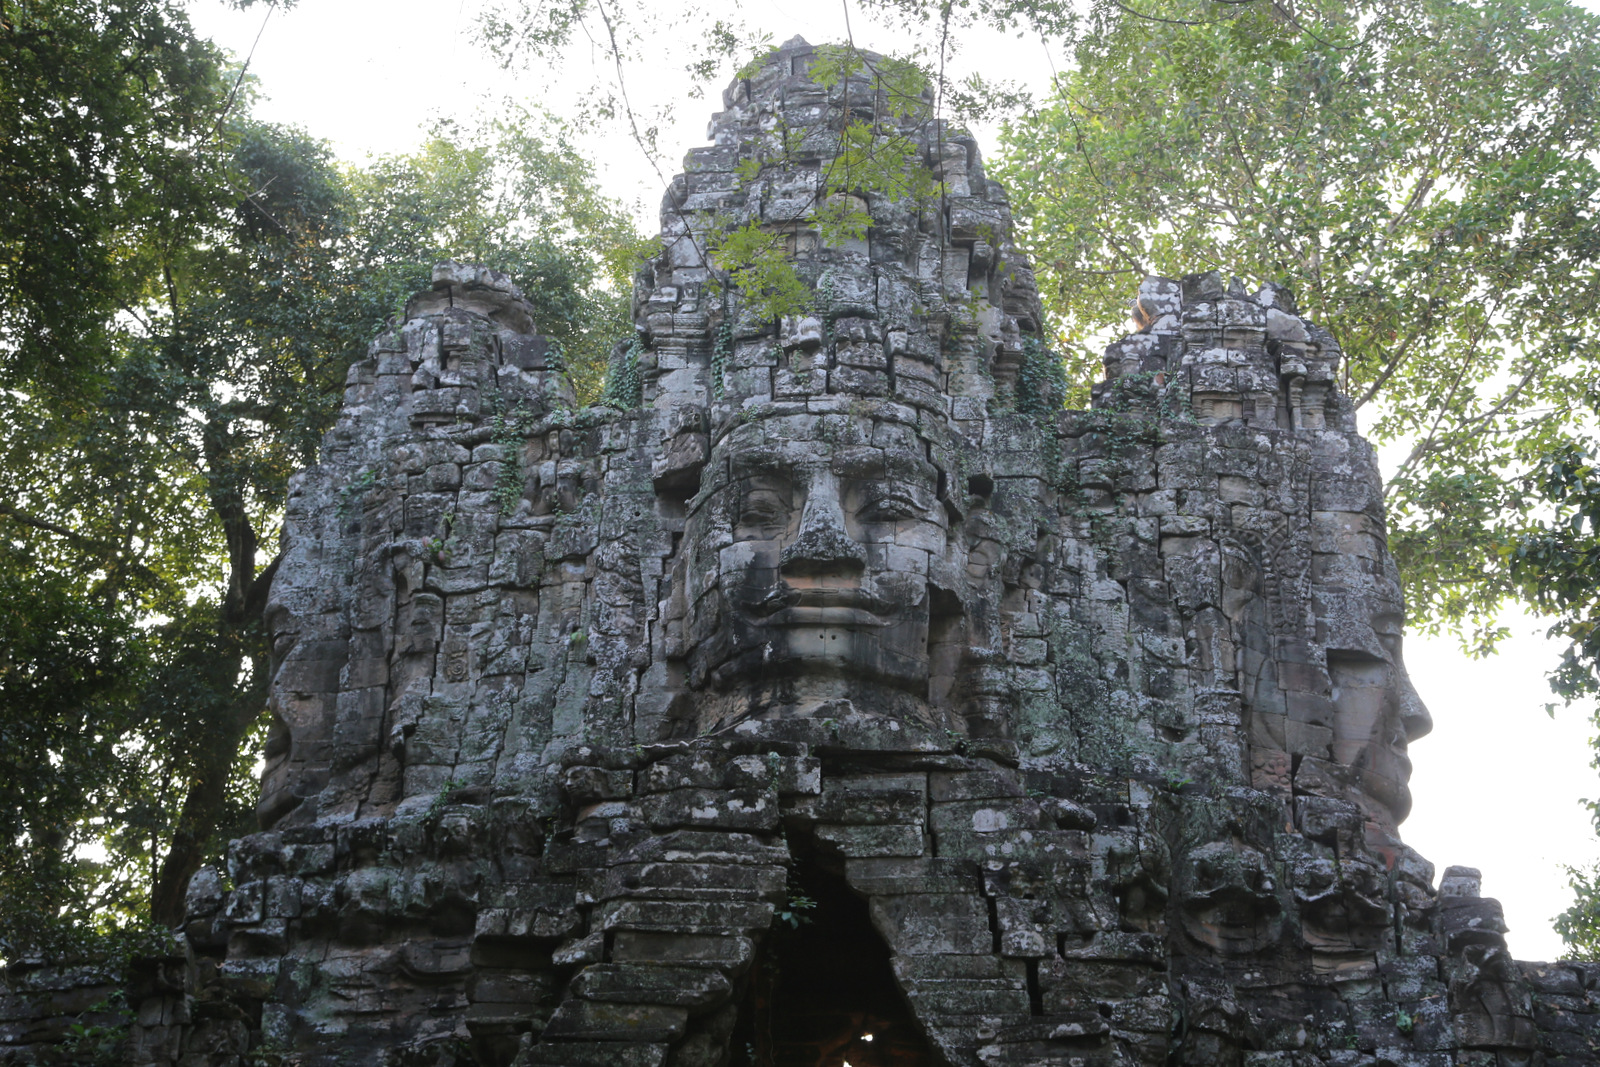 The smiling faces of Bayon